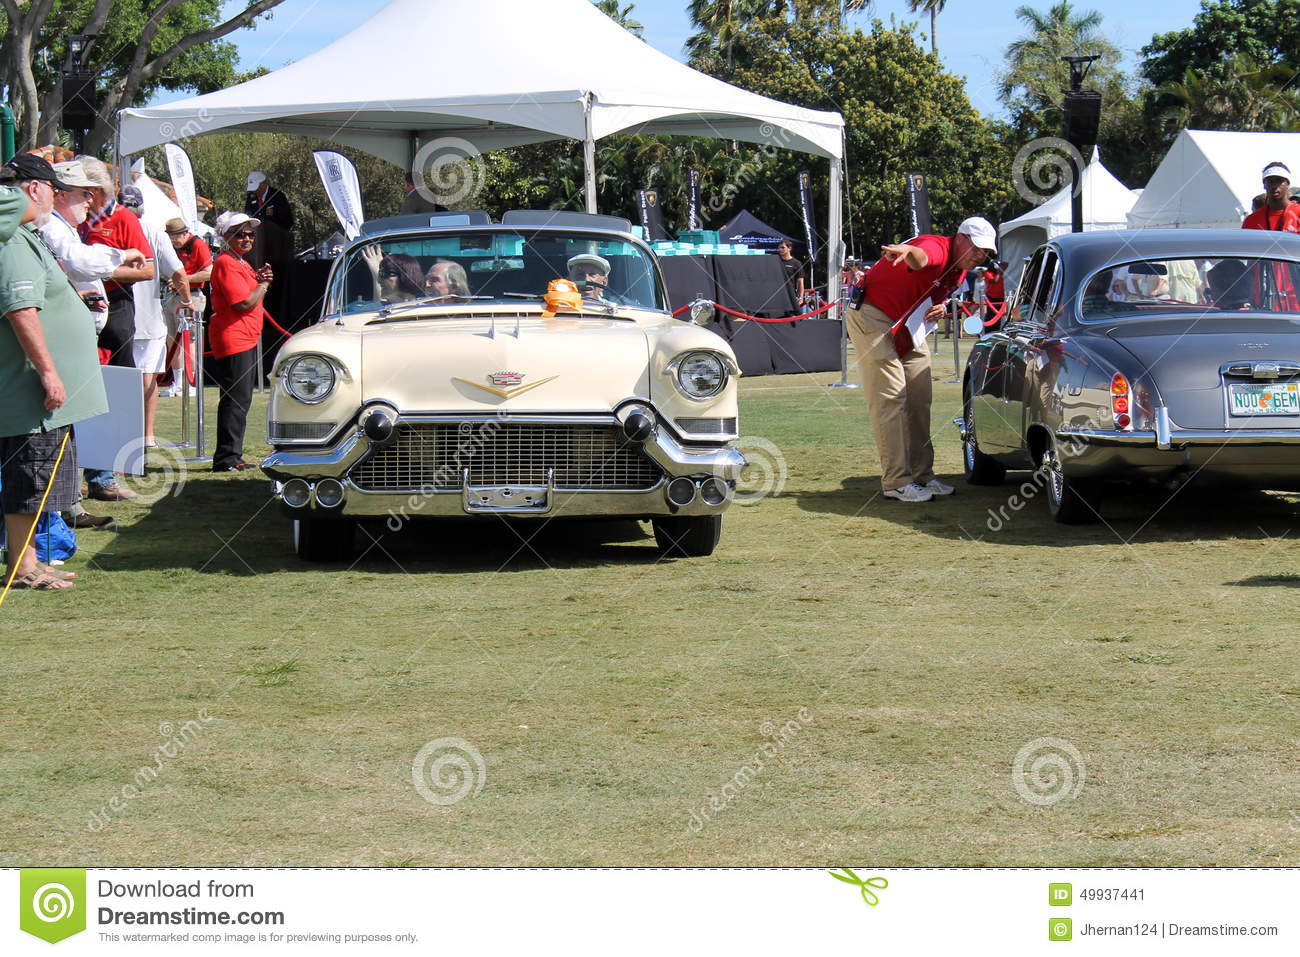 Bocaraton Old Car Event